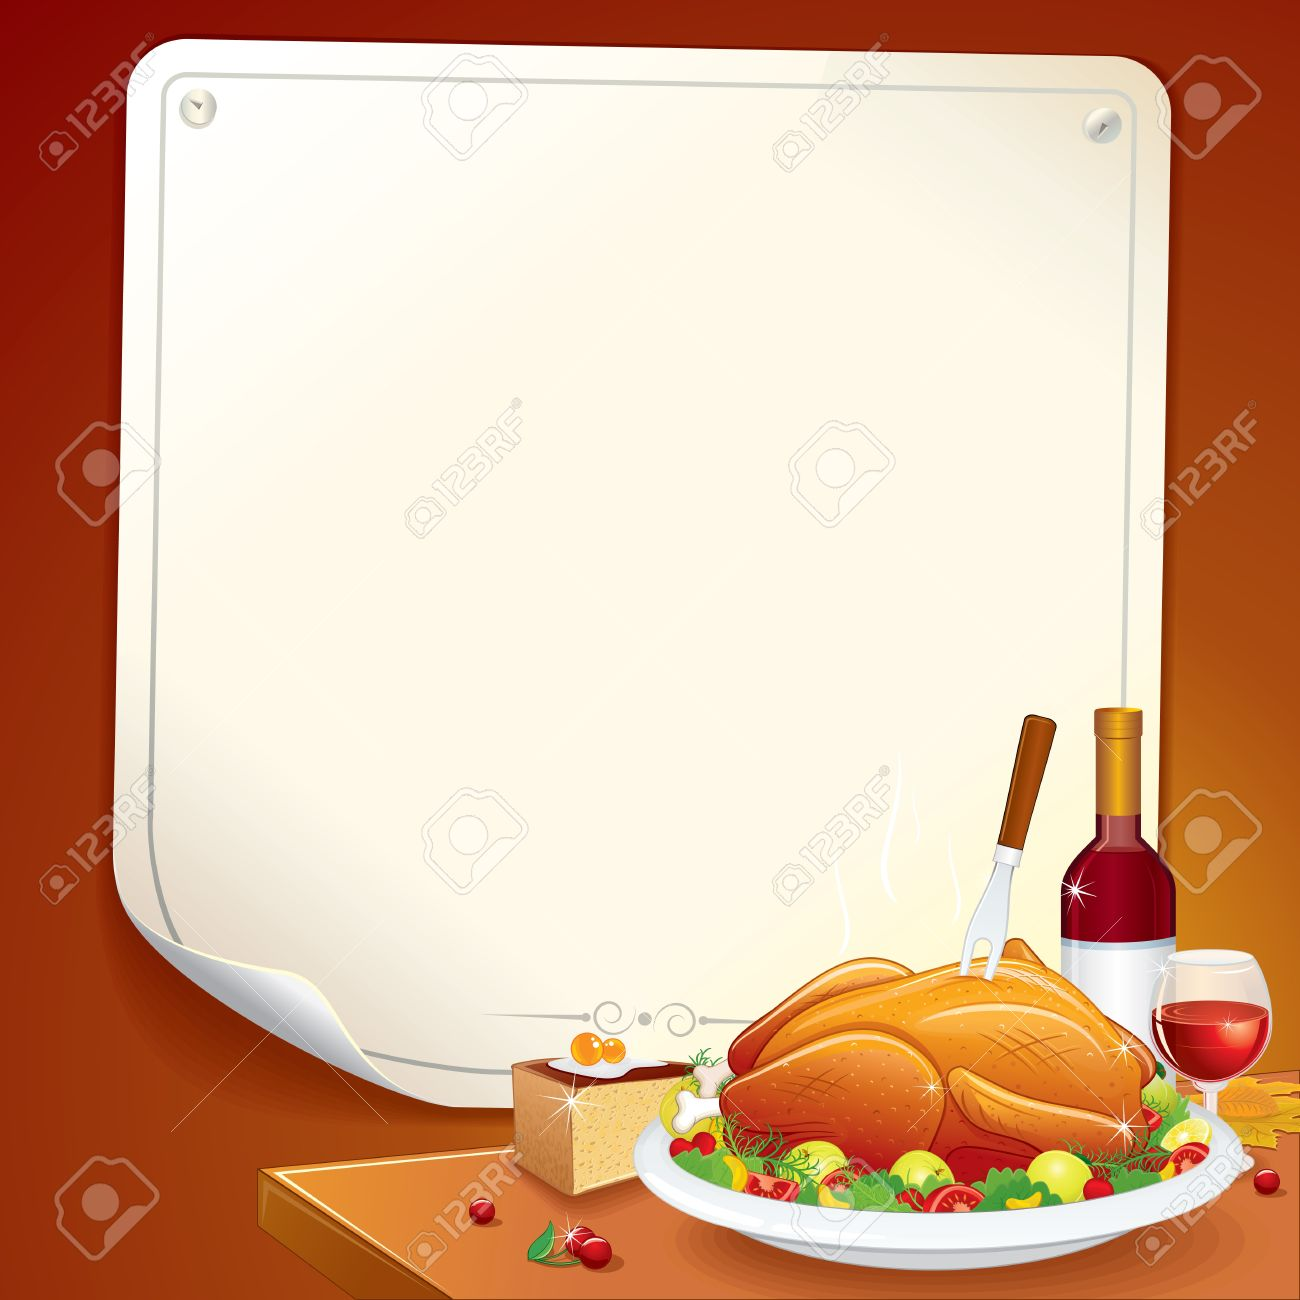 Thanksgiving Background with Roasted Turkey, Pie and Wine Stock Vector - 16446687